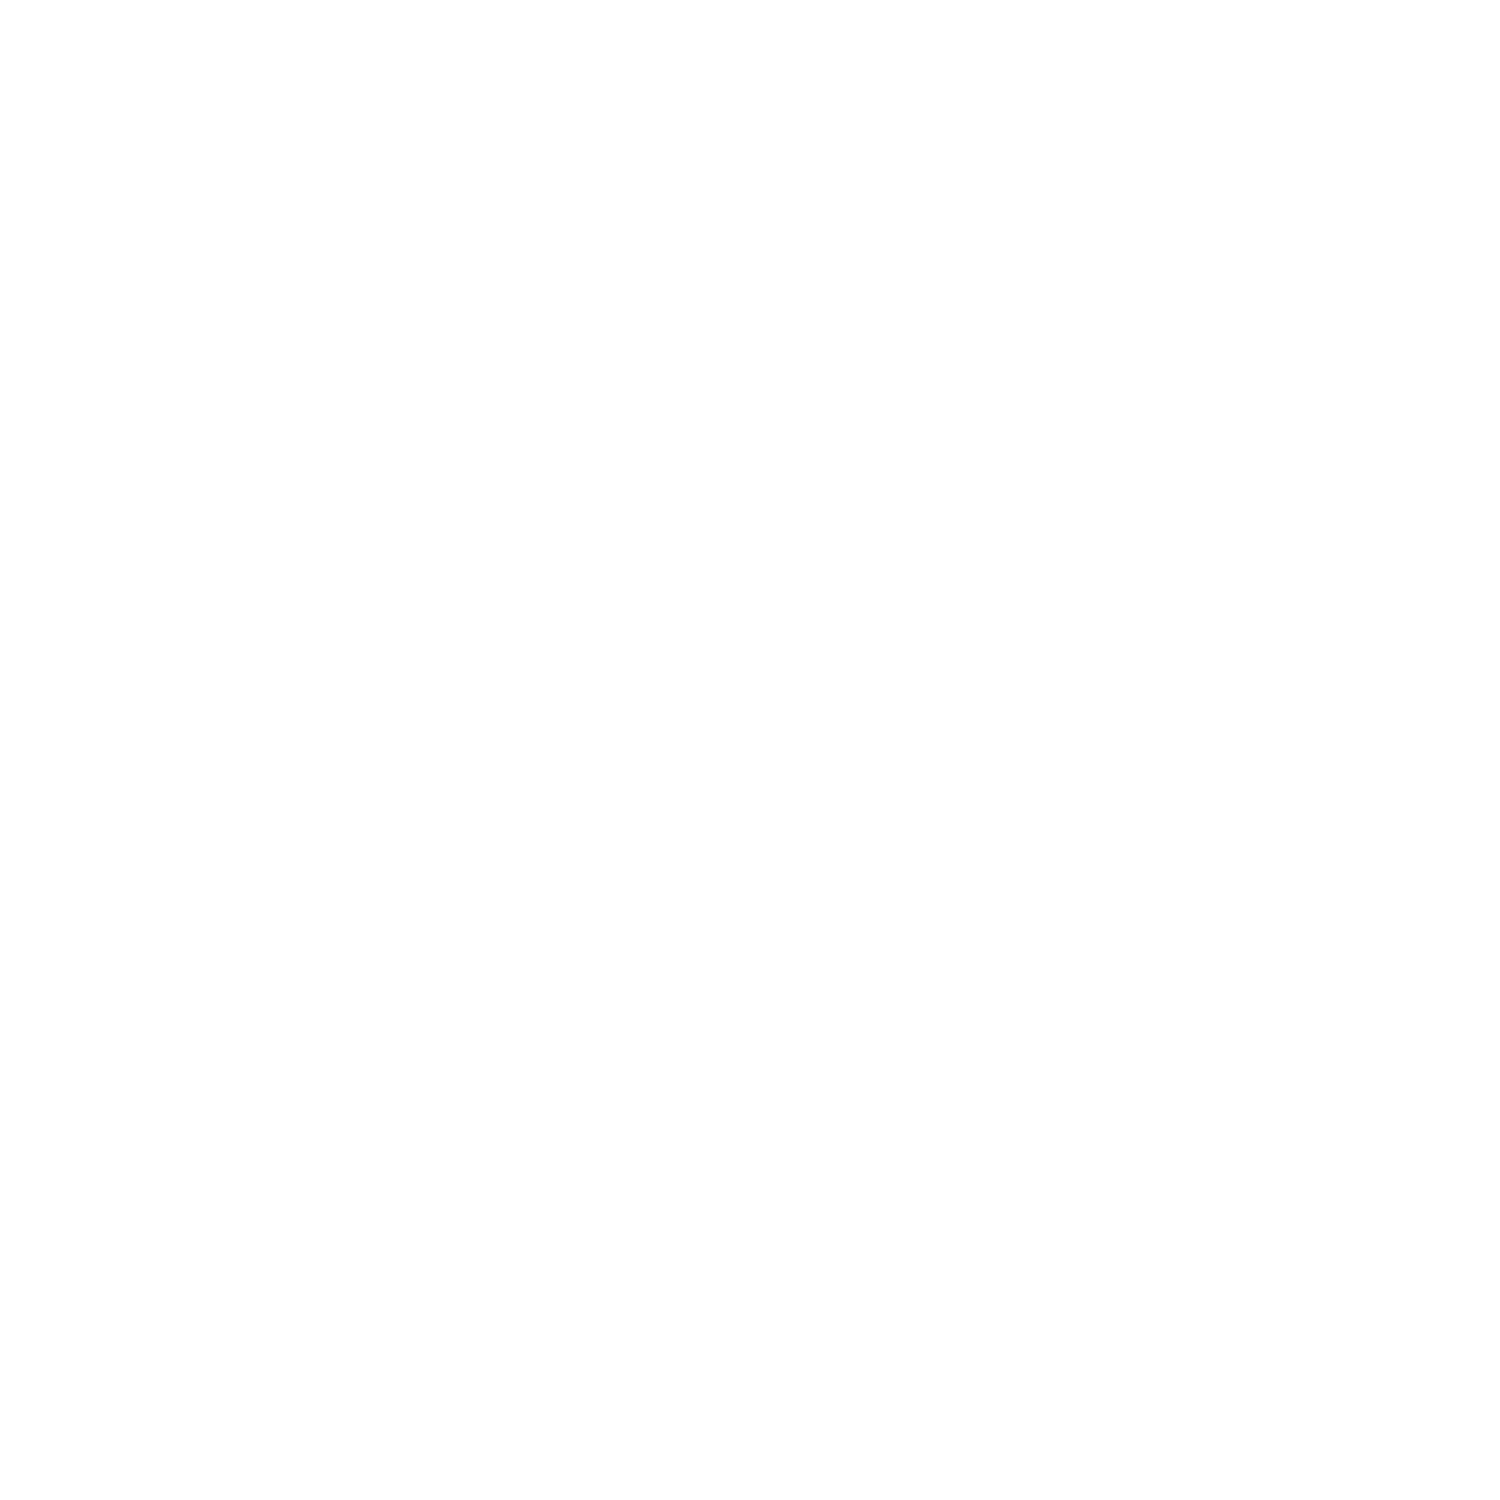 SaveMadisonValley